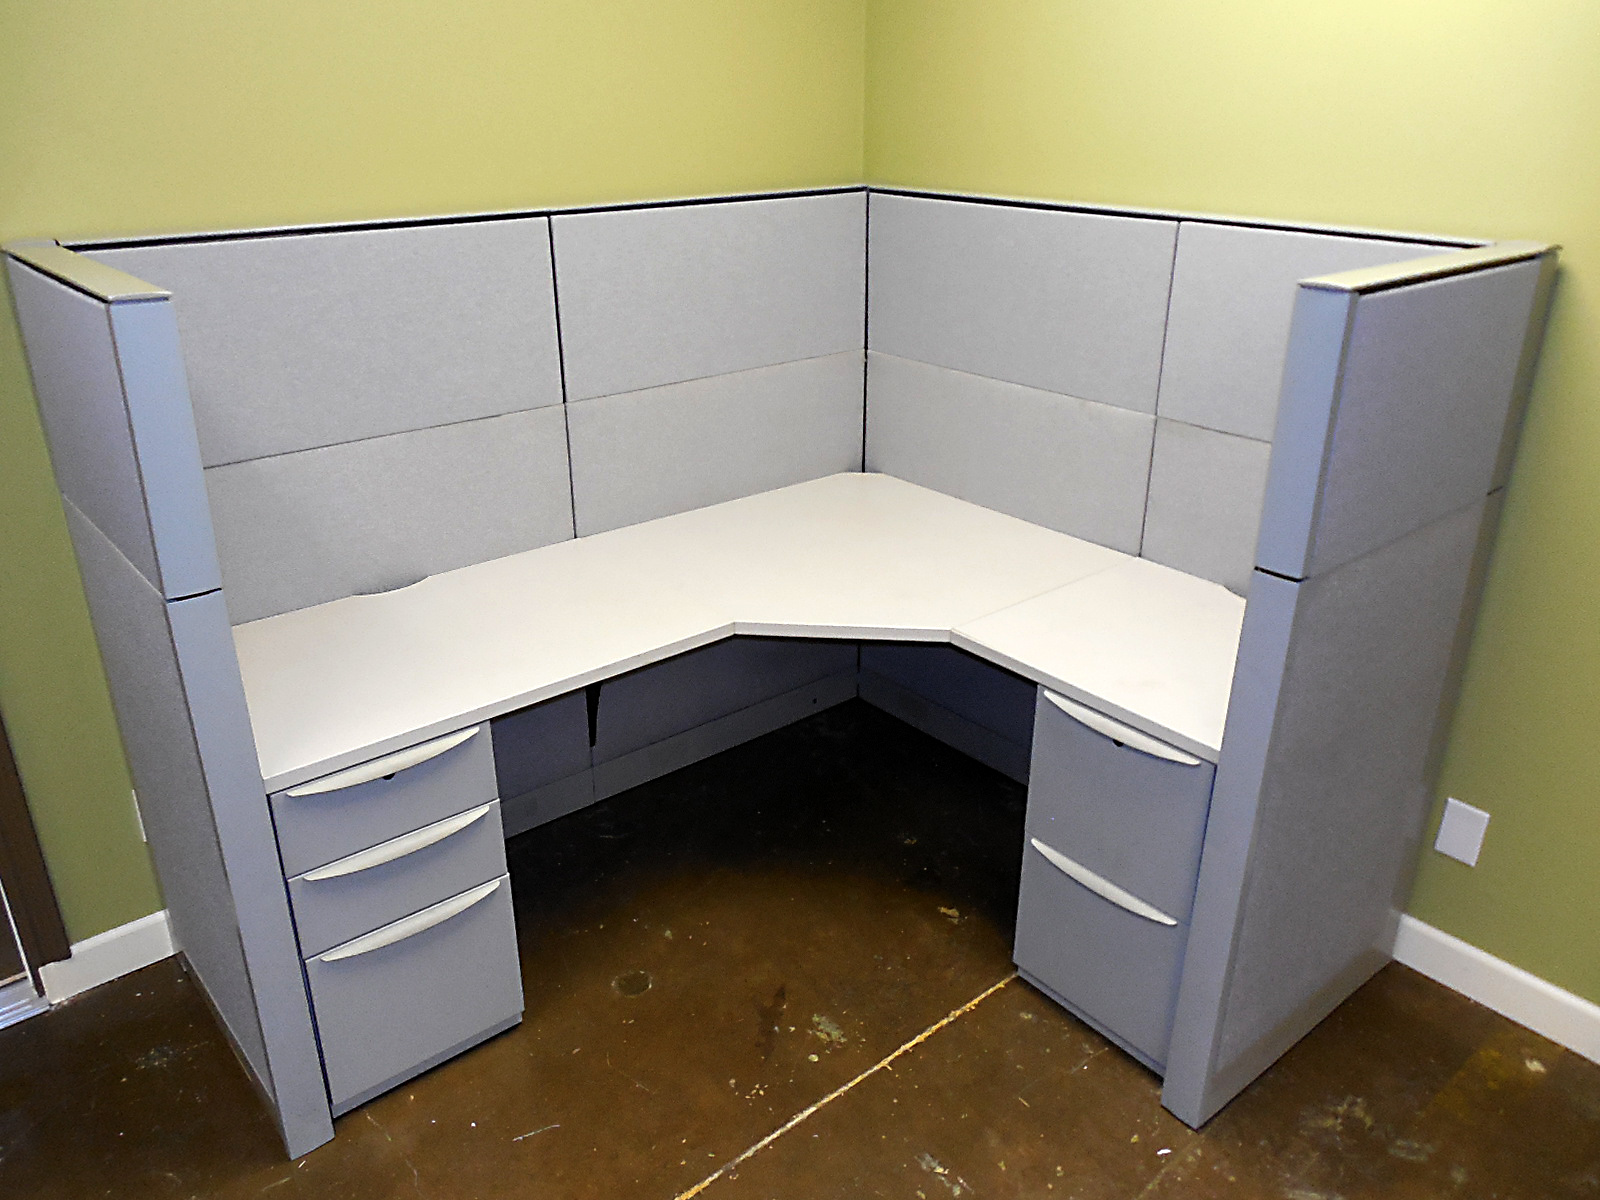 Used Haworth Premise Cubicles, 6X5